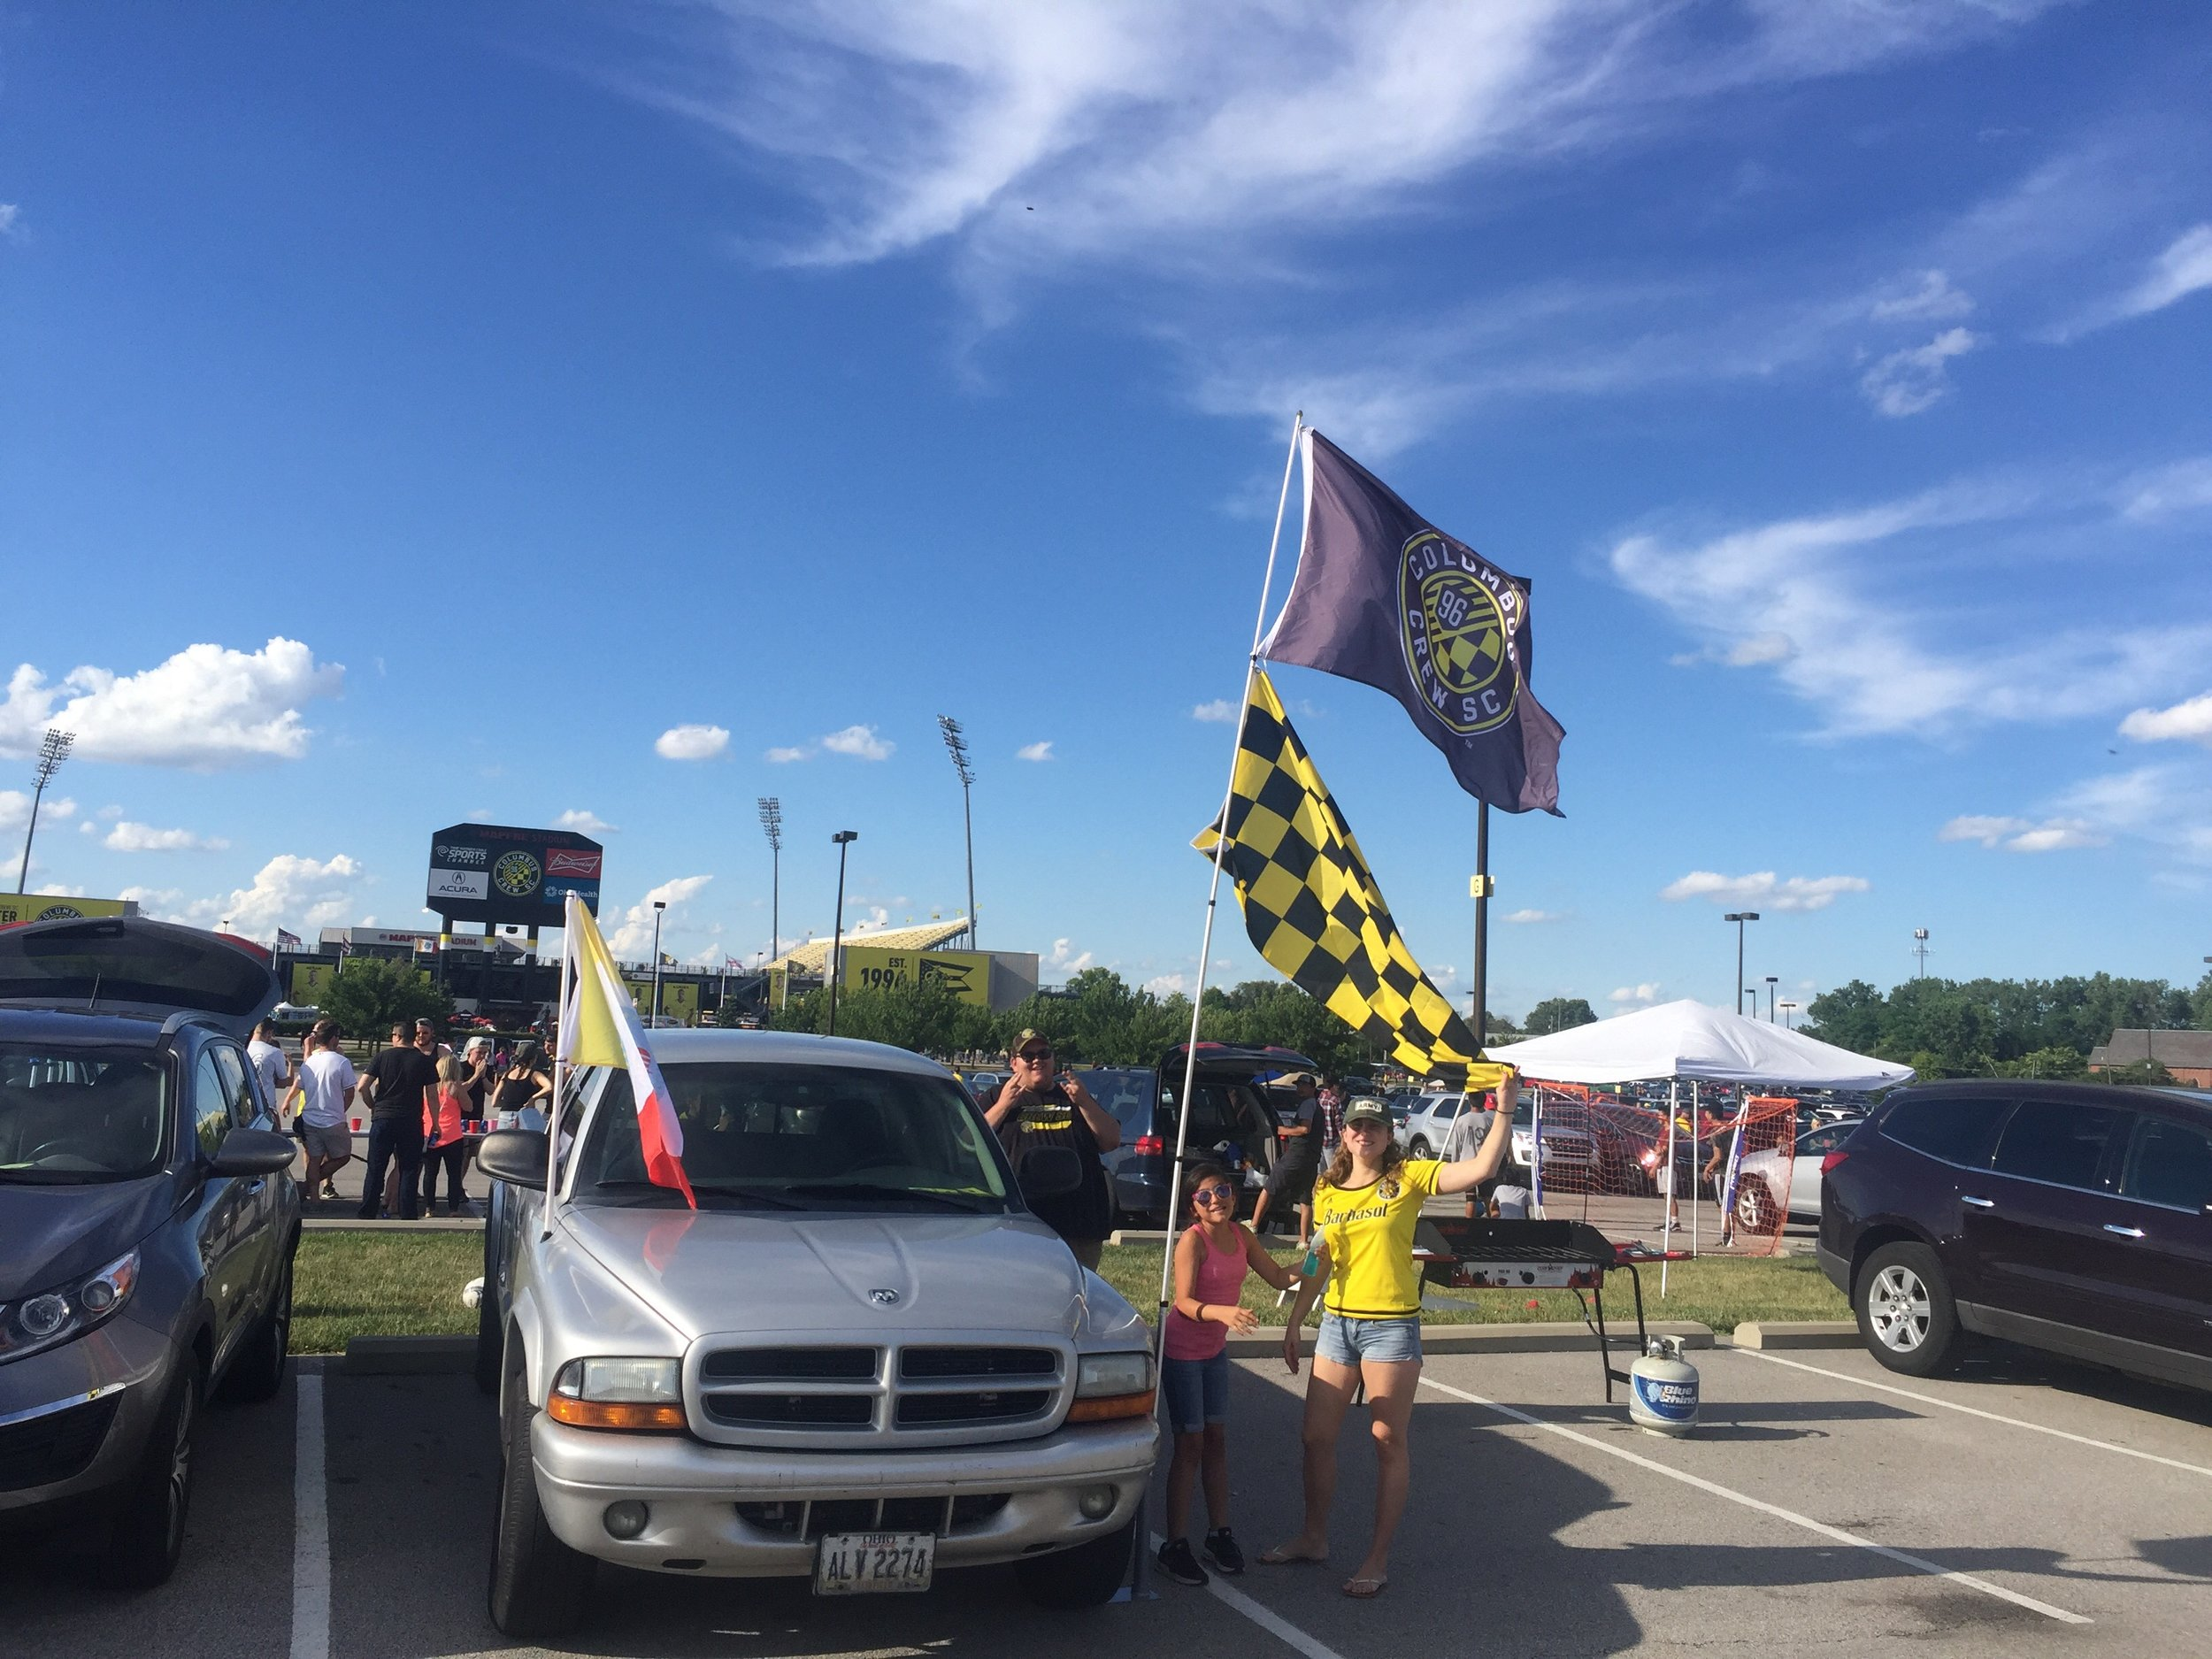 Setting up the tailgate at MAPFRE Stadium